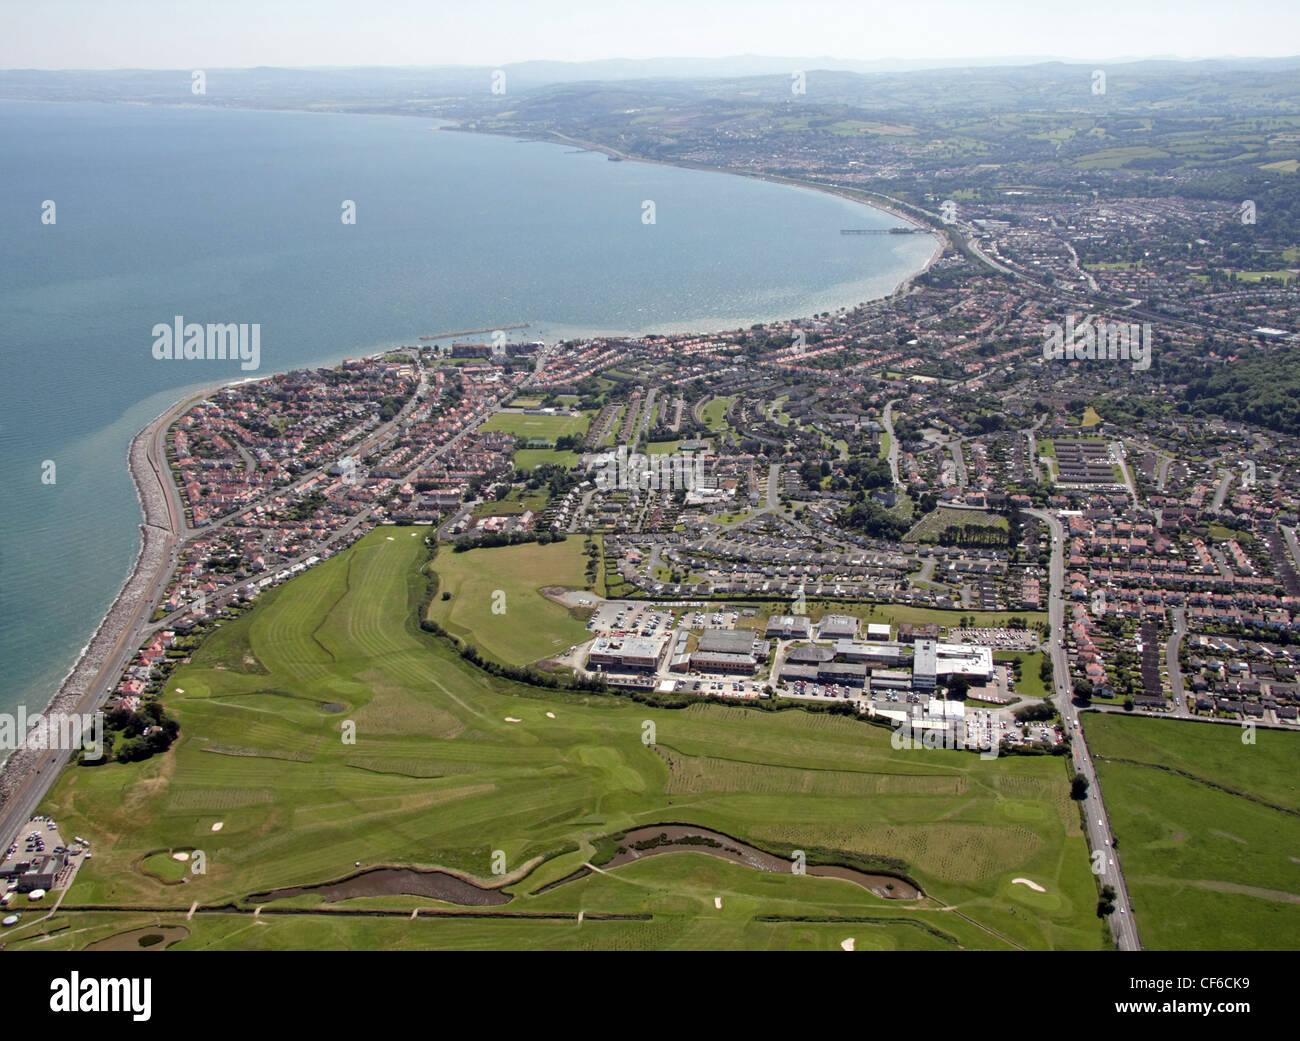 Aerial image of Rhos on Sea, Colwyn Bay, North Wales - Stock Image